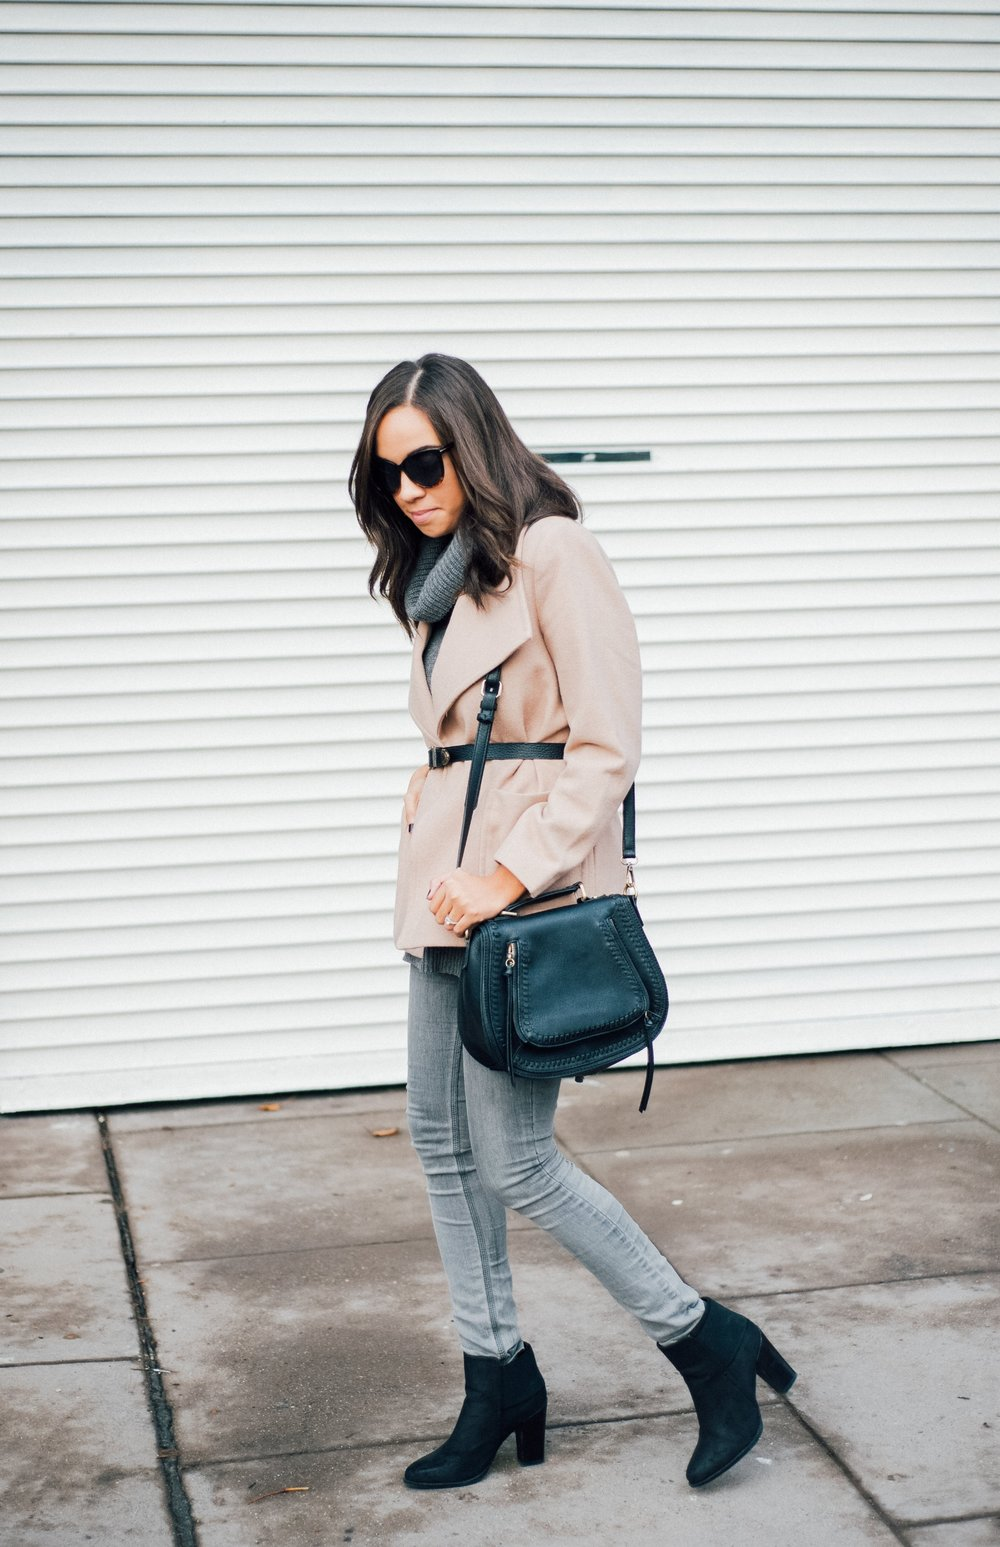 Grey Turtleneck Sweater + Vintage Belt 3.jpg